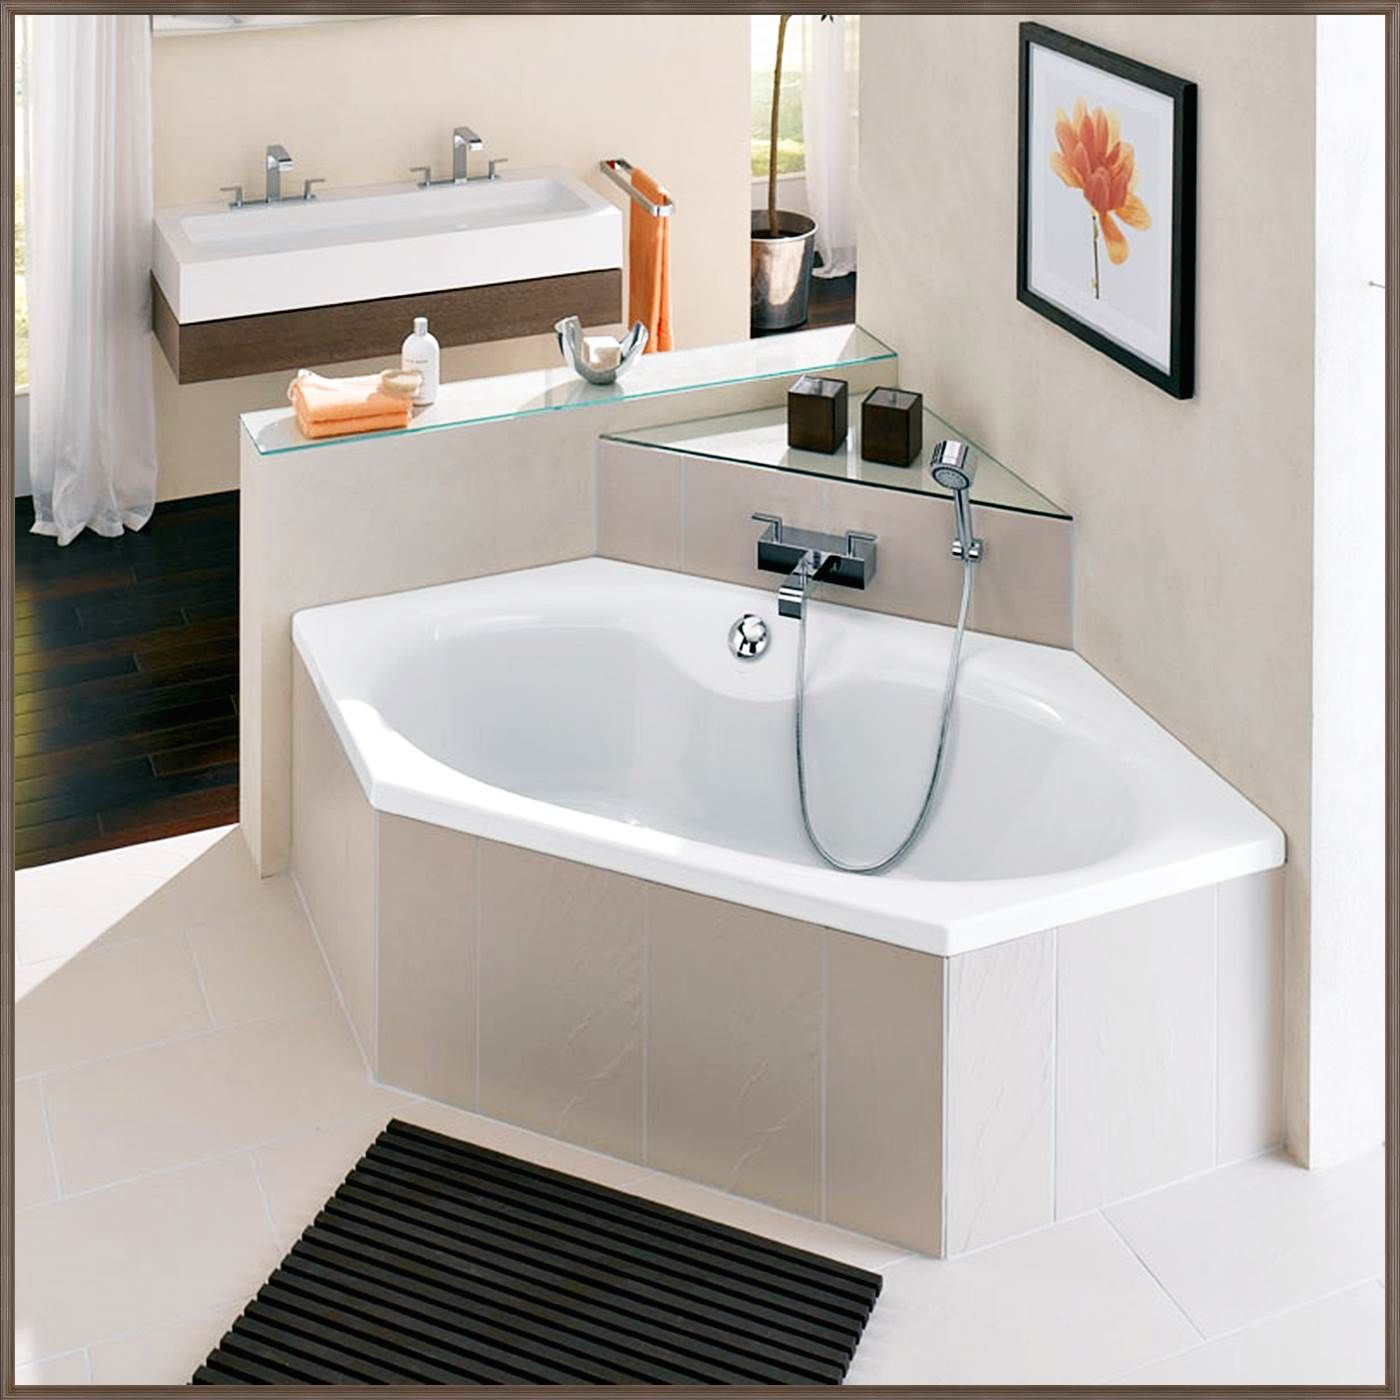 Sechseck Badewanne 180x80 Sechseck Badewanne Modern Decor Pinterest Bathroom Bath And